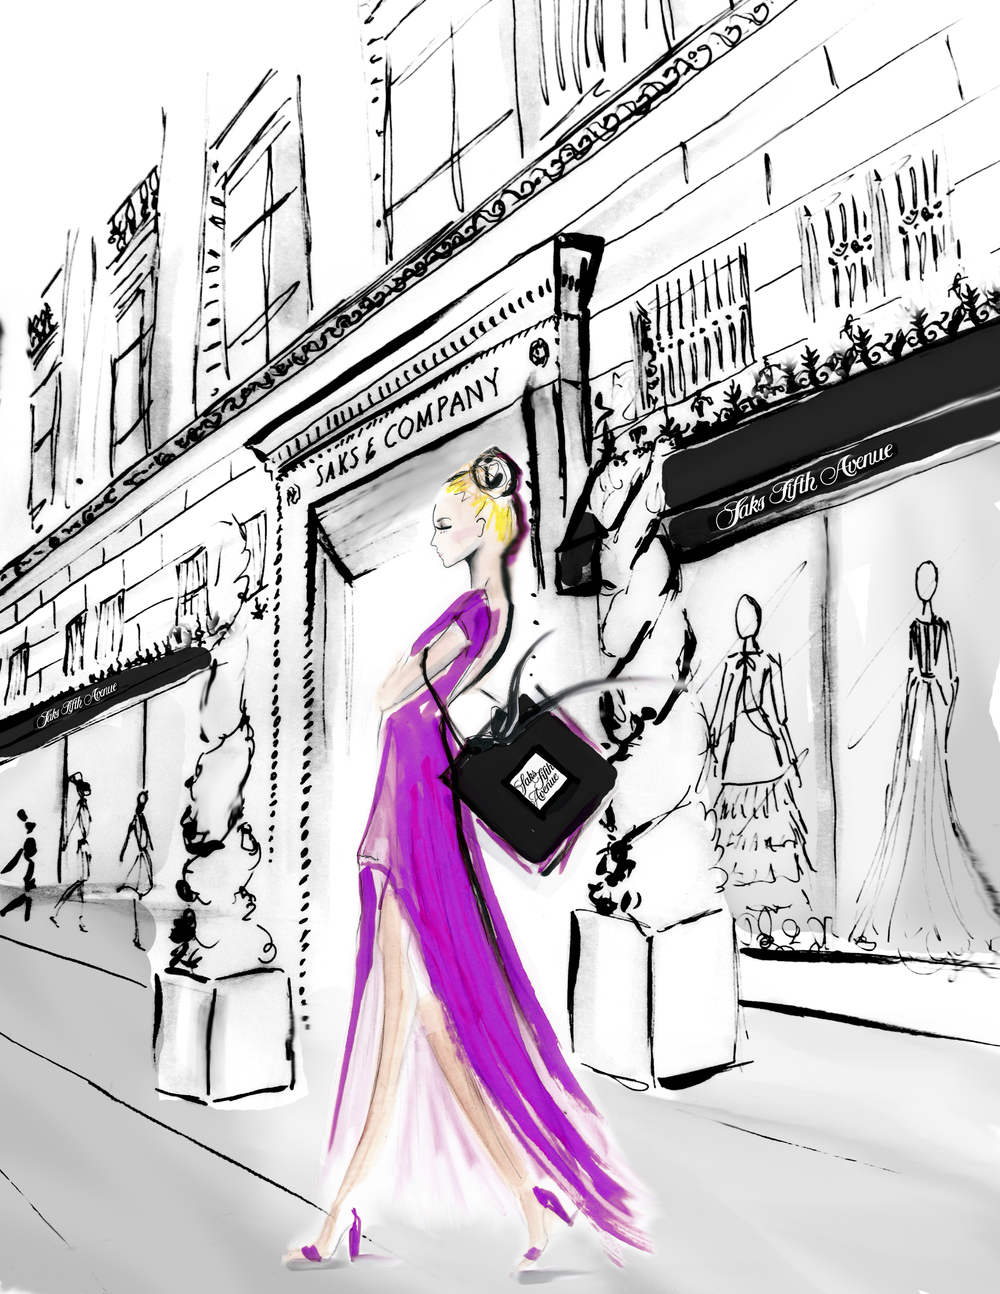 Shopping at Saks by Deanna First